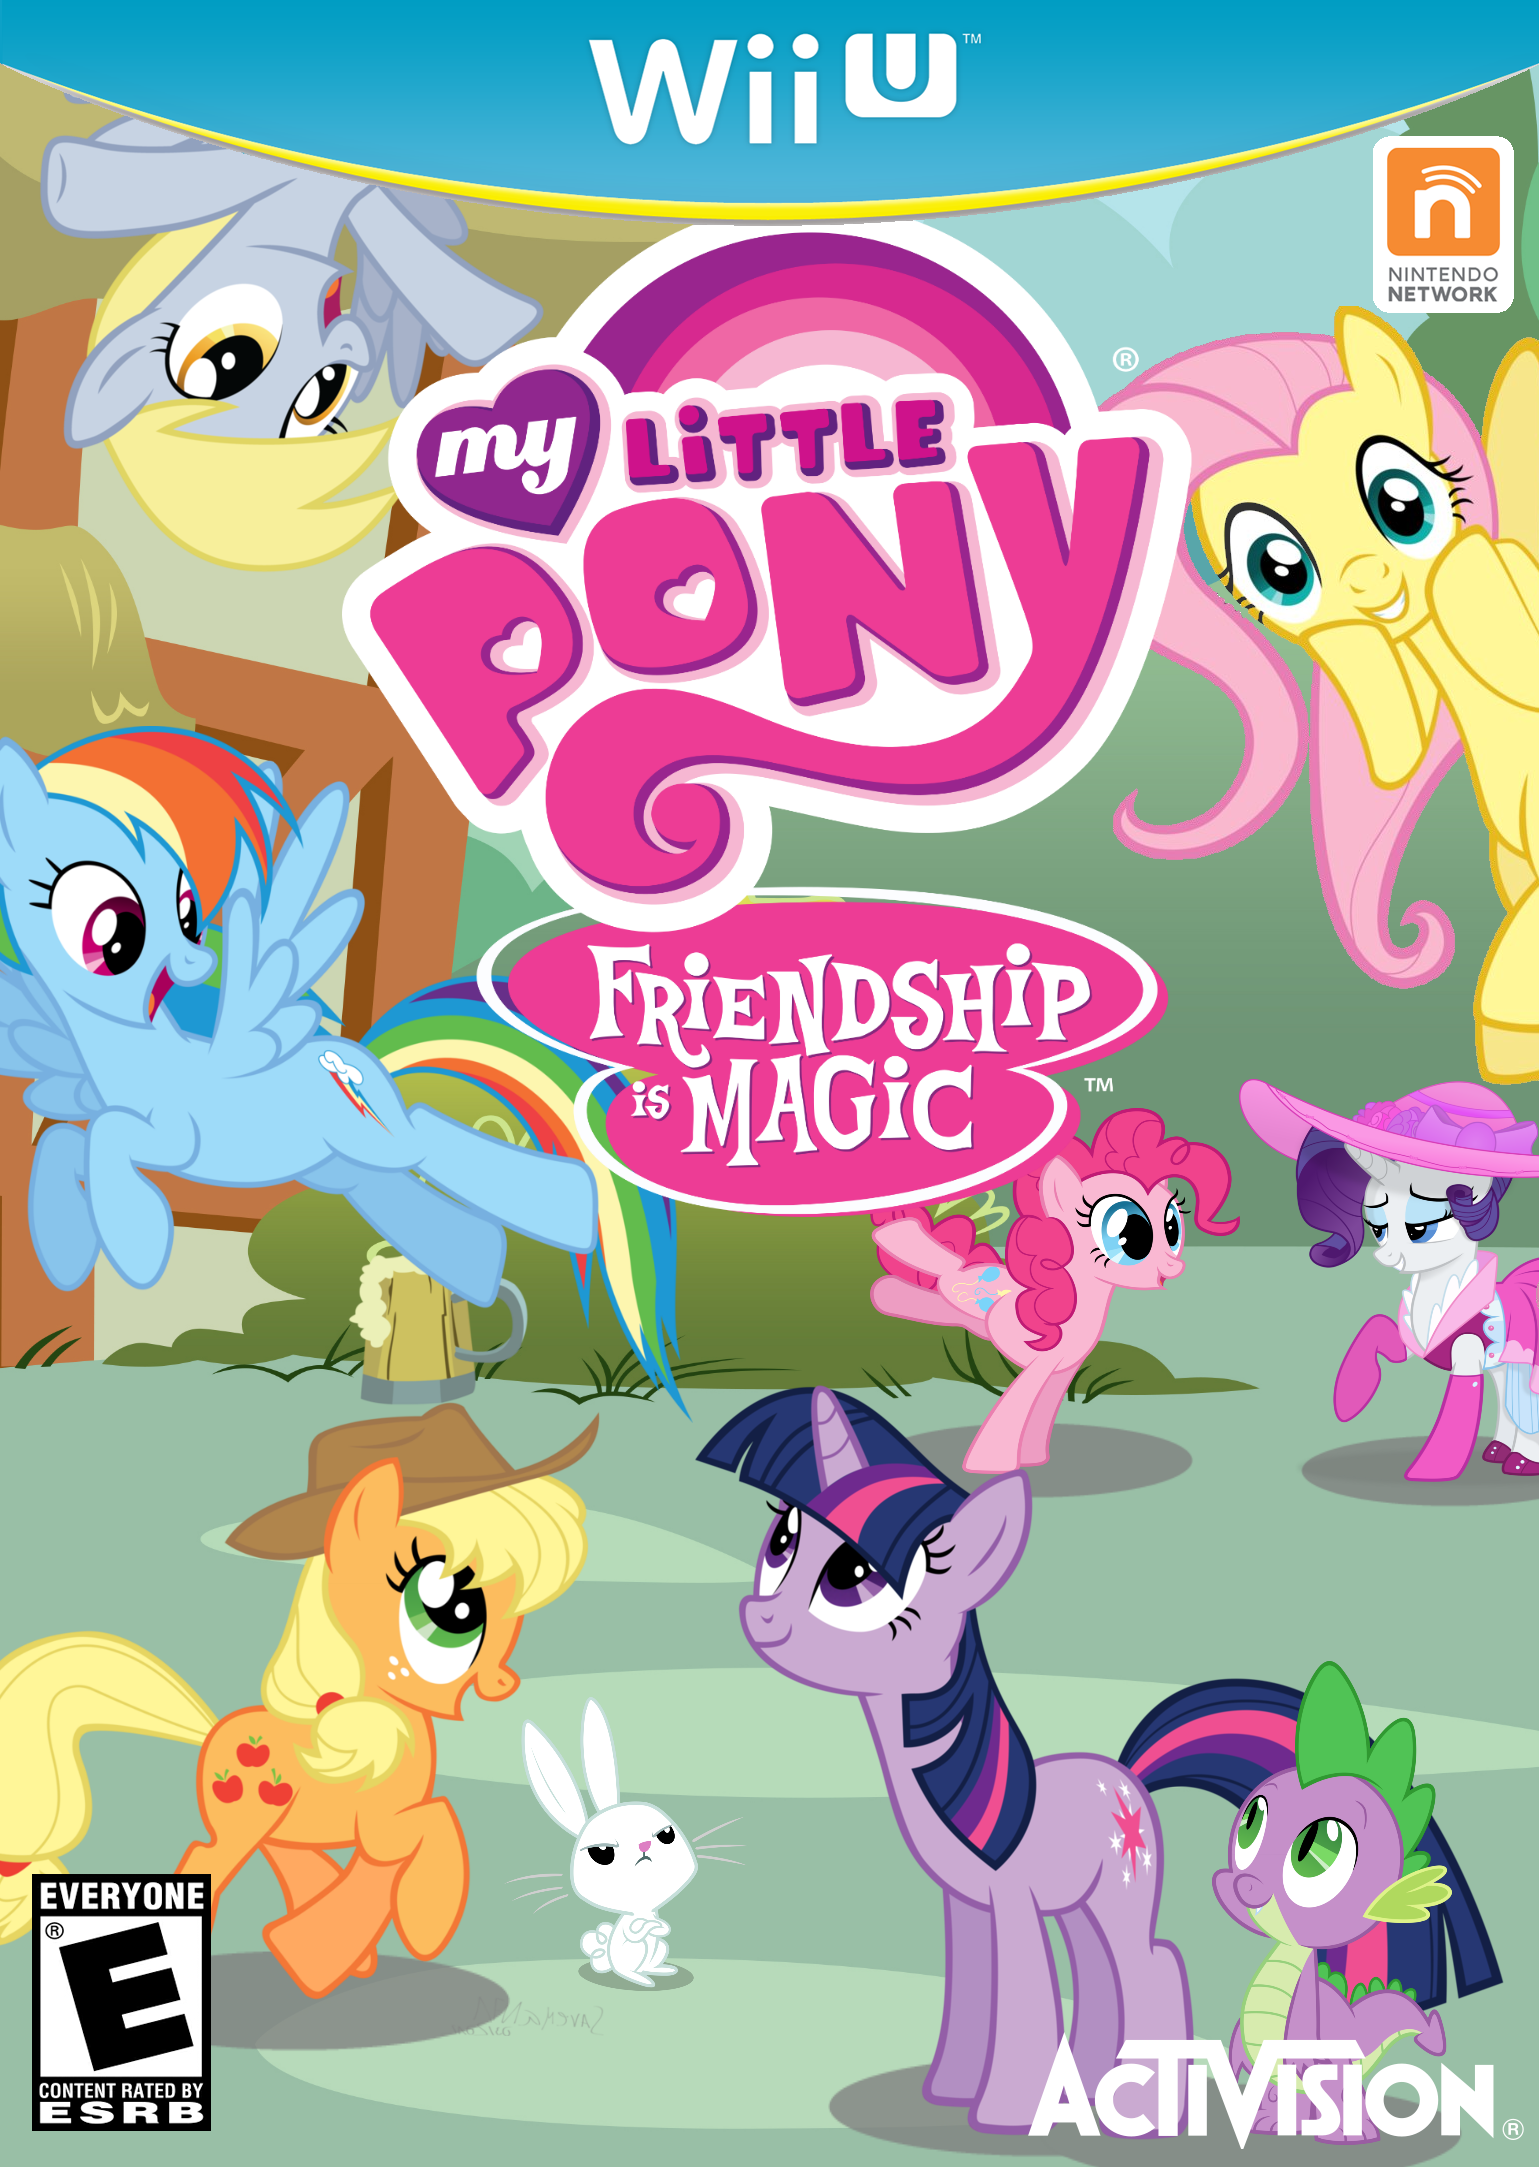 My Little Pony: Friendship is Magic Wii U Box Art Cover by ...